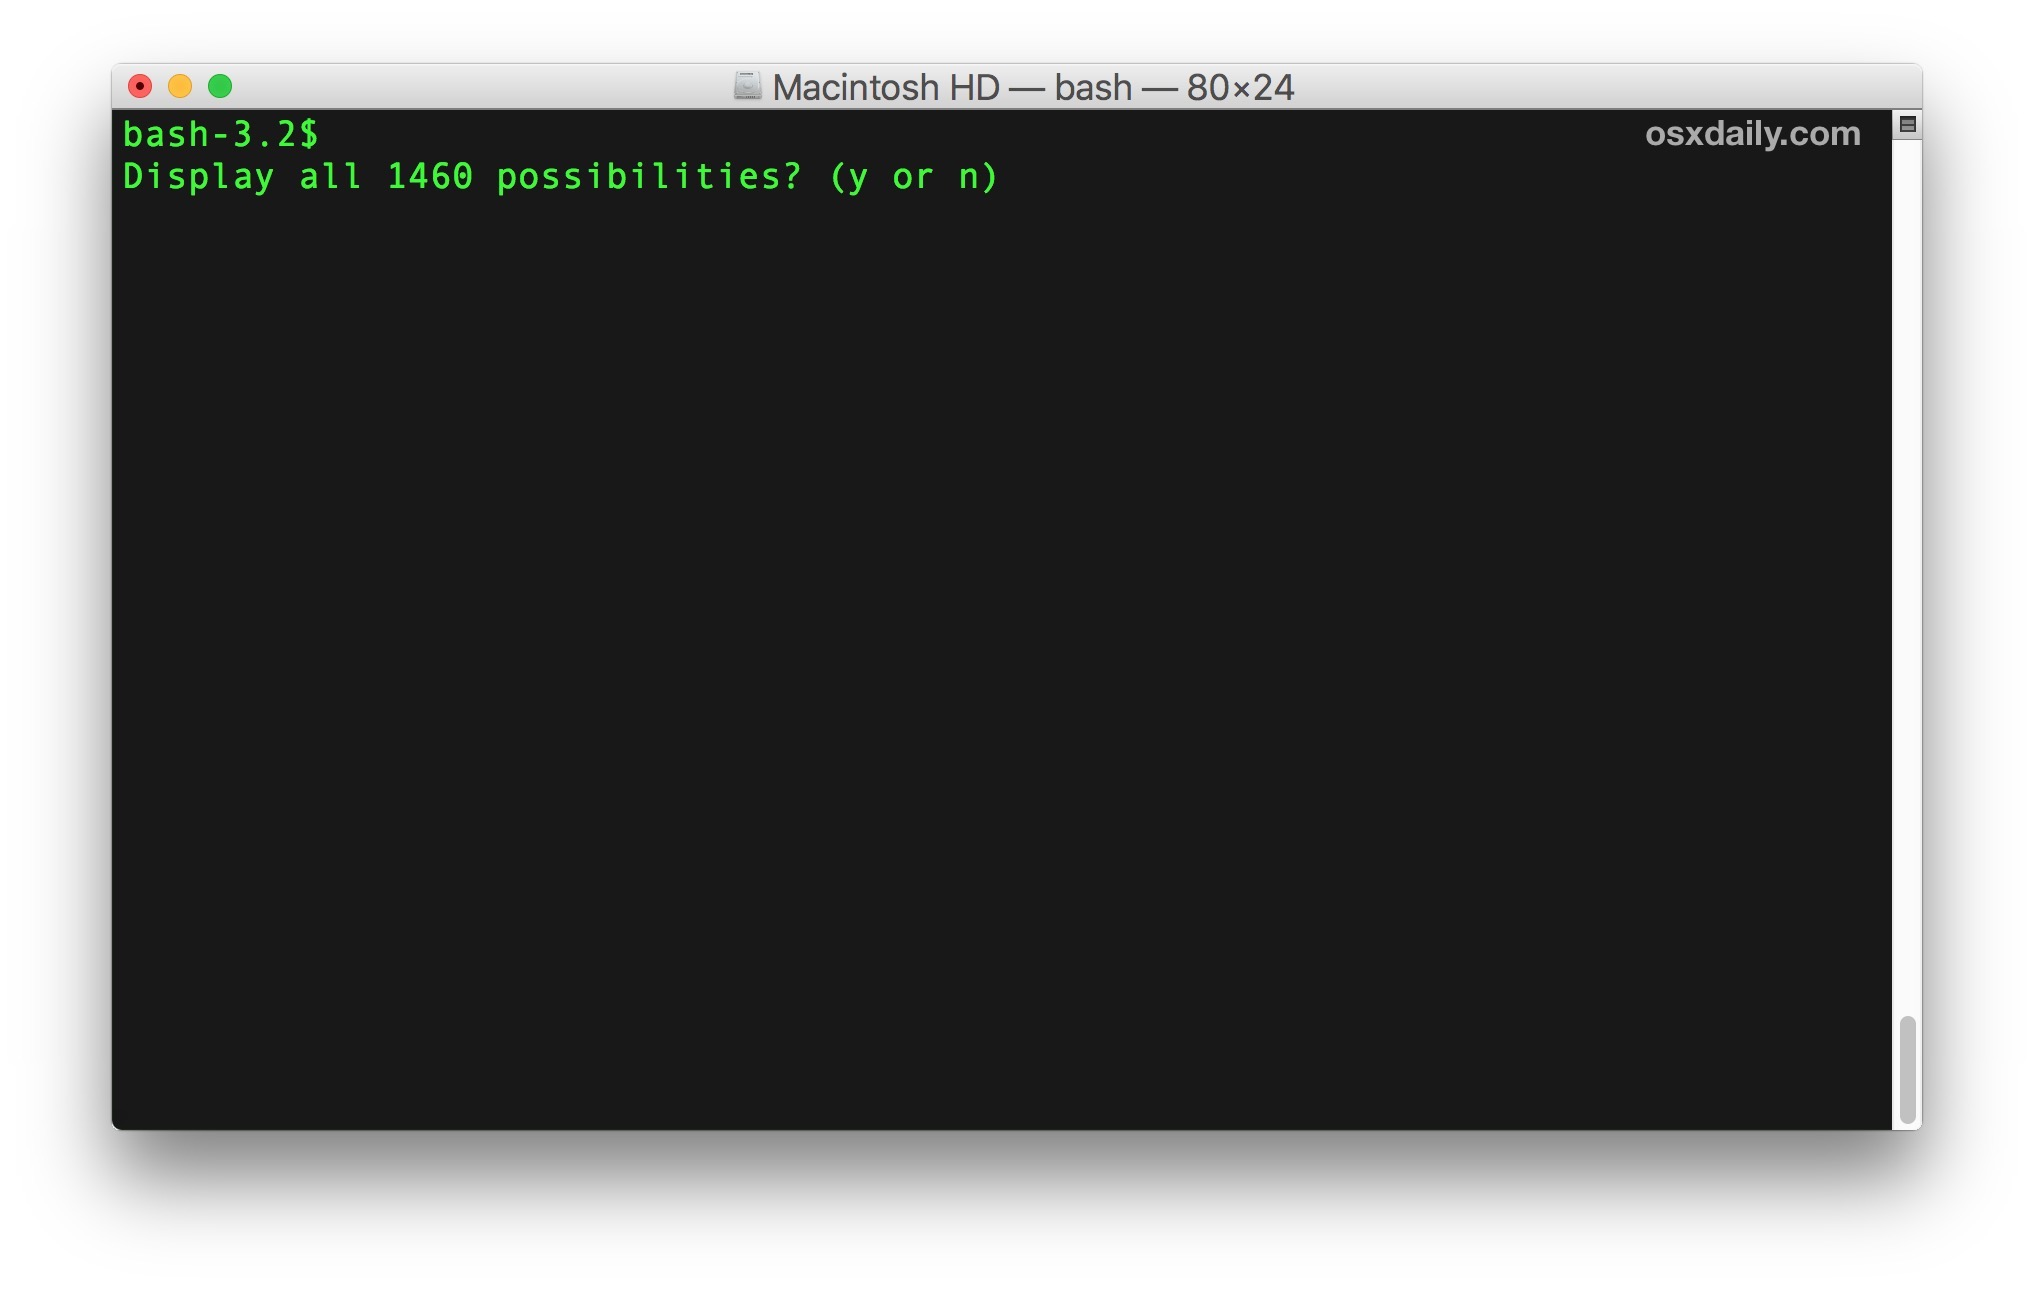 Listing every possible terminal command on the Mac